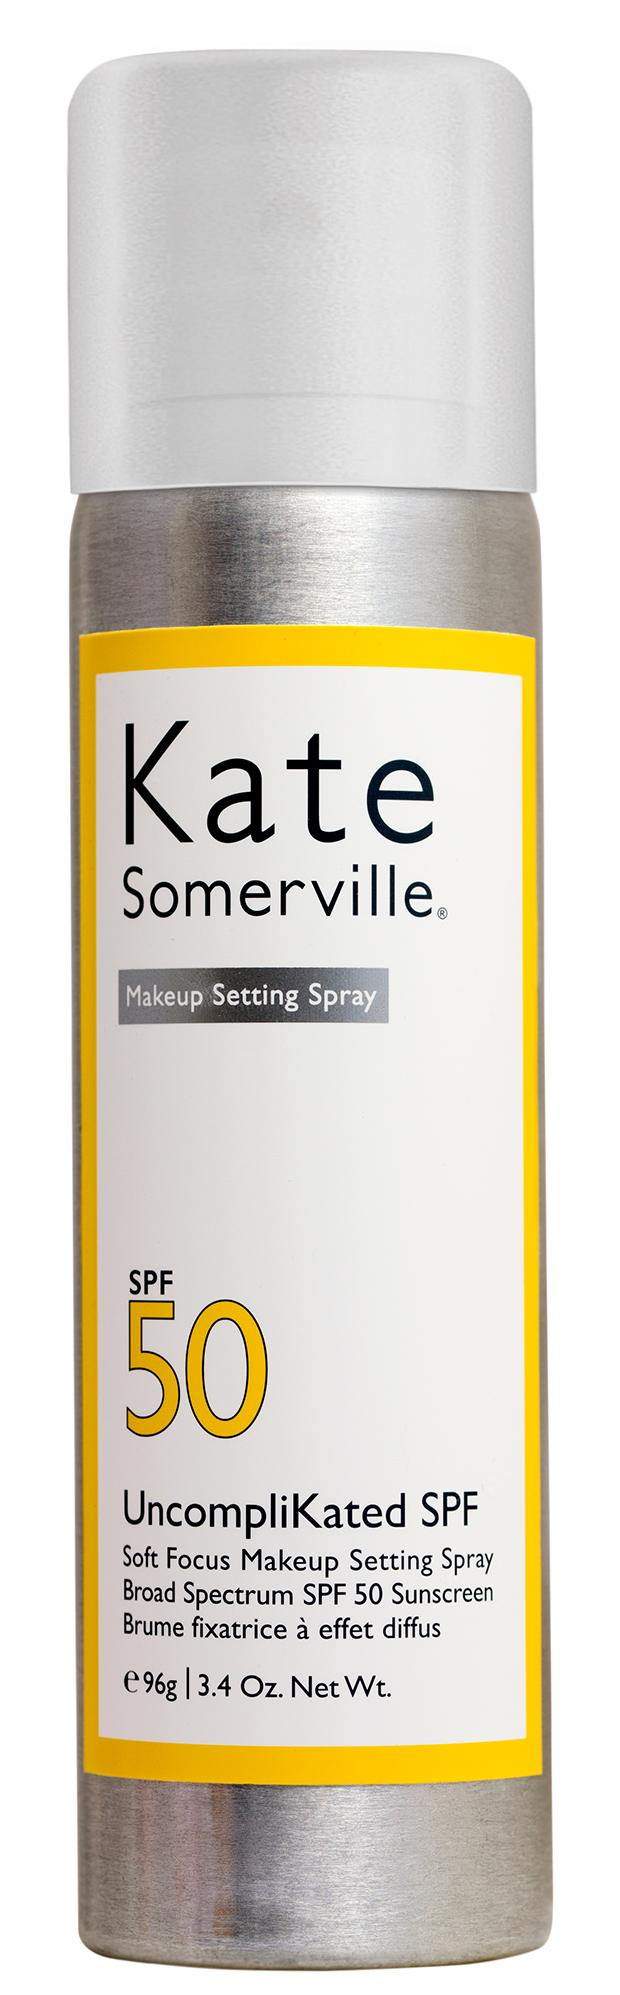 The 9 Best Sport Sunscreens for Every Skin Type: Kate Somerville UncompliKated SPF 50